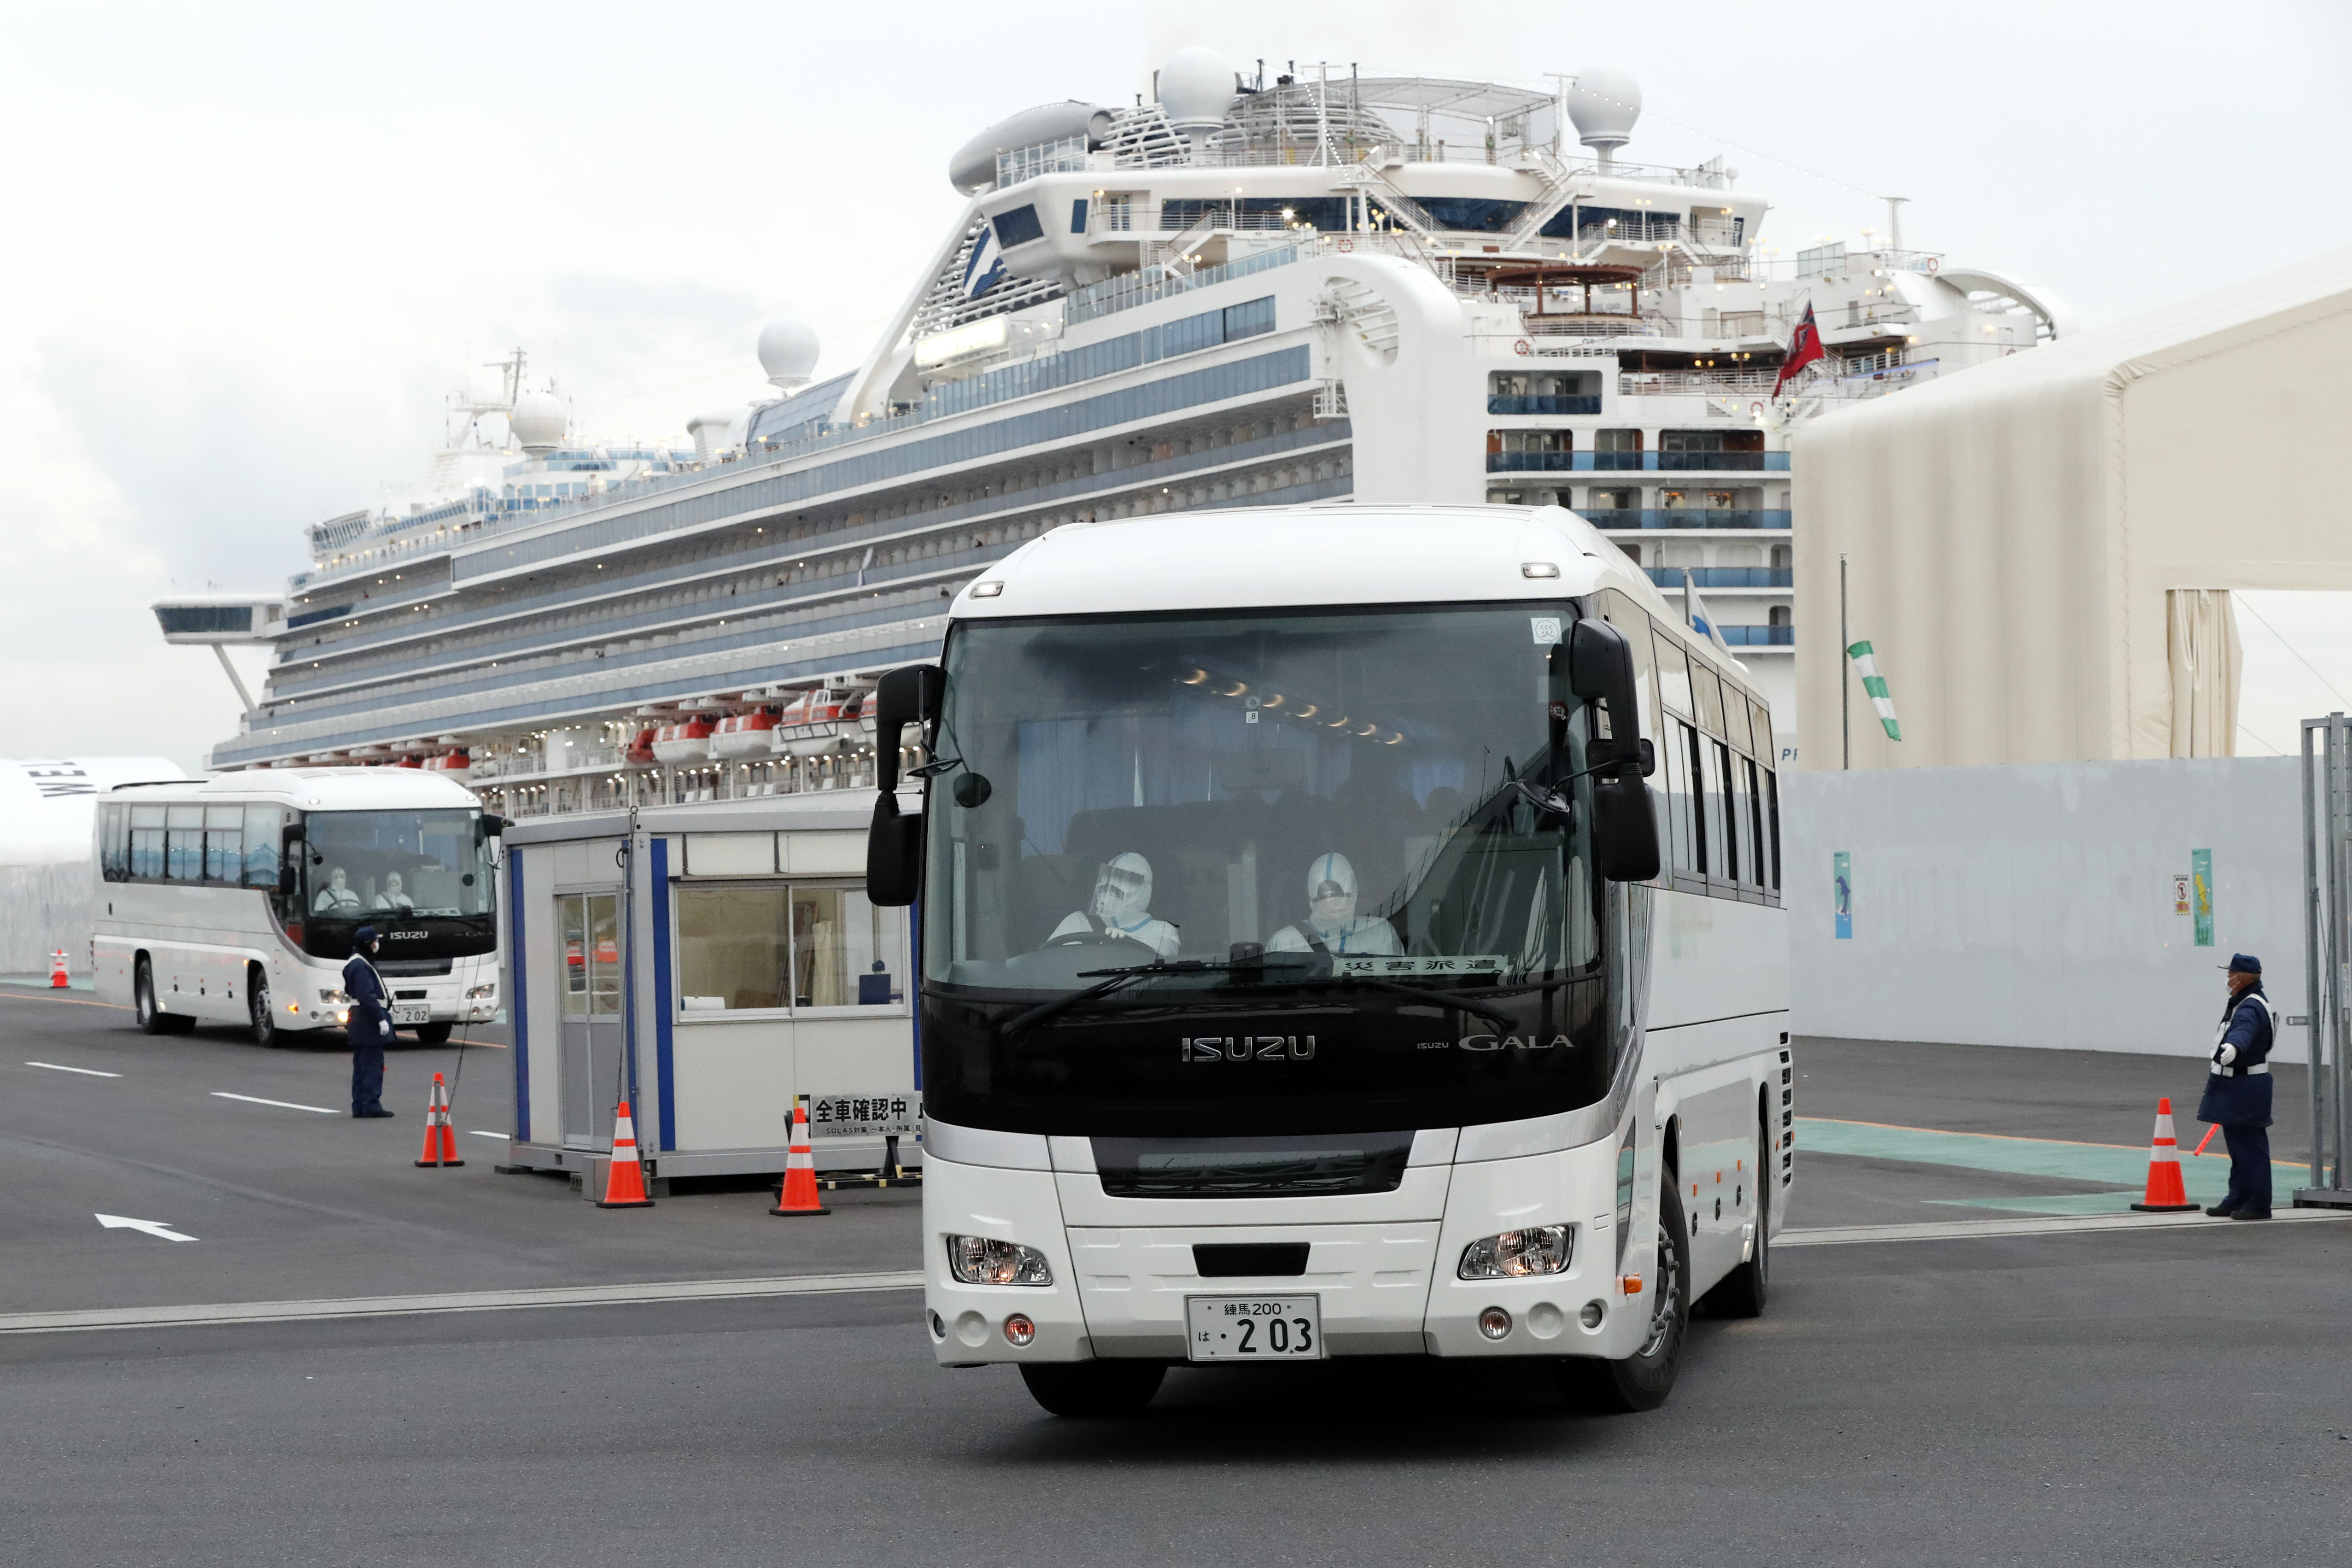 Bus carrying the passengers from the quarantined Diamond Princess cruise ship leave a port in Yokohama, near Tokyo, Thursday, Feb. 20, 2020. Passengers tested negative for COVID-19 started disembarking since Wednesday. (Eugene Hoshiko/AP)